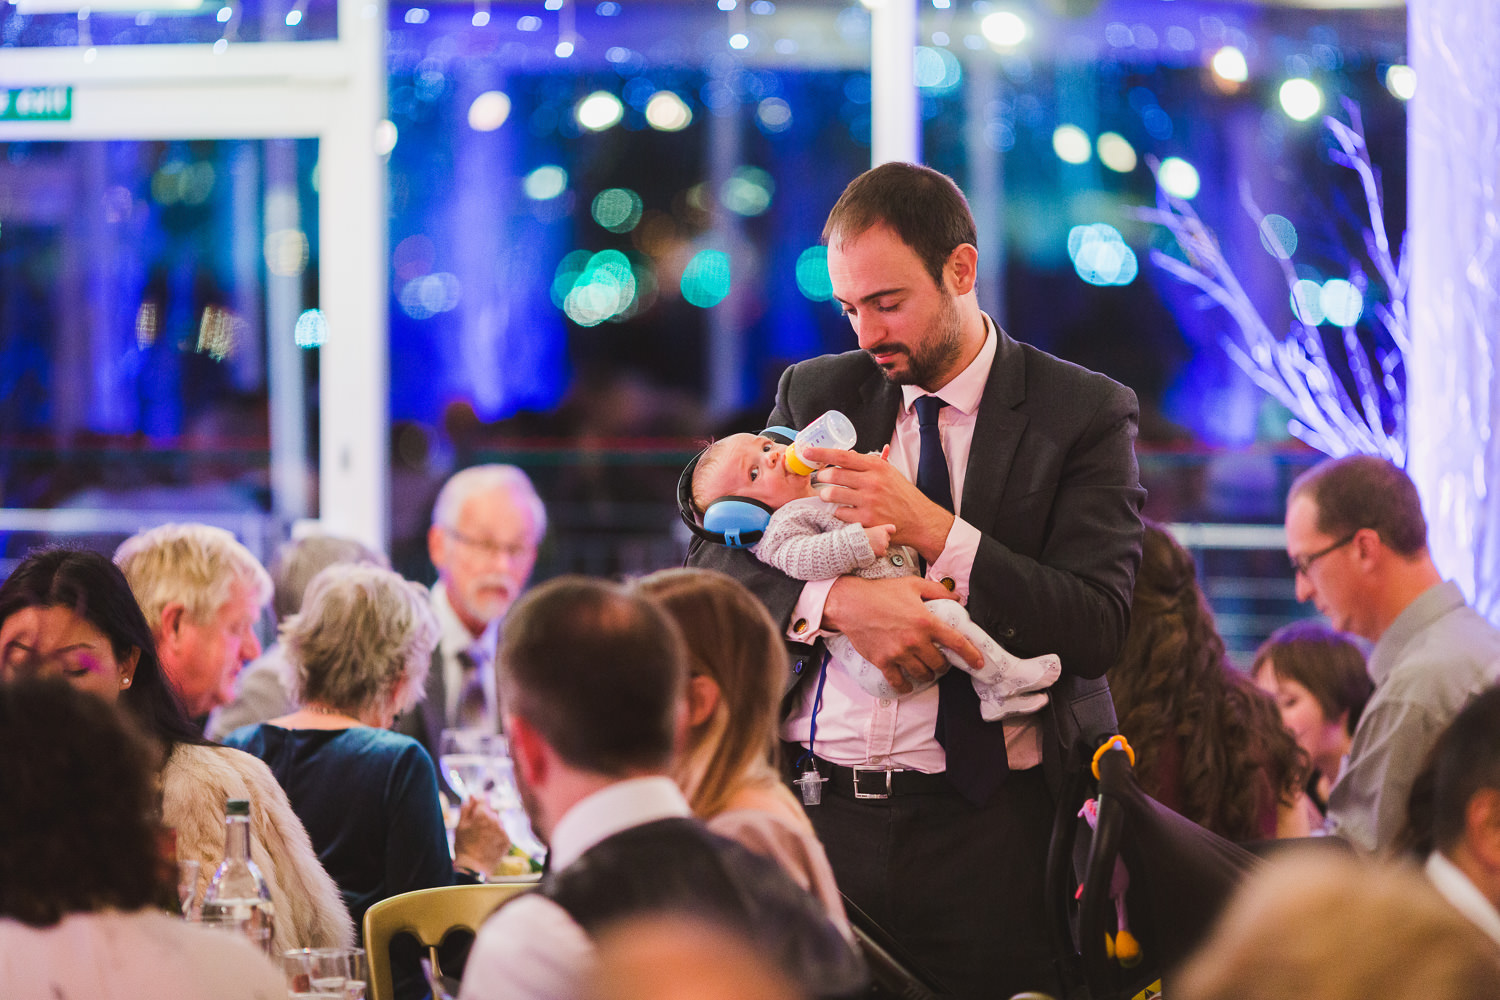 man feeding baby with headphones at loud wedding reception